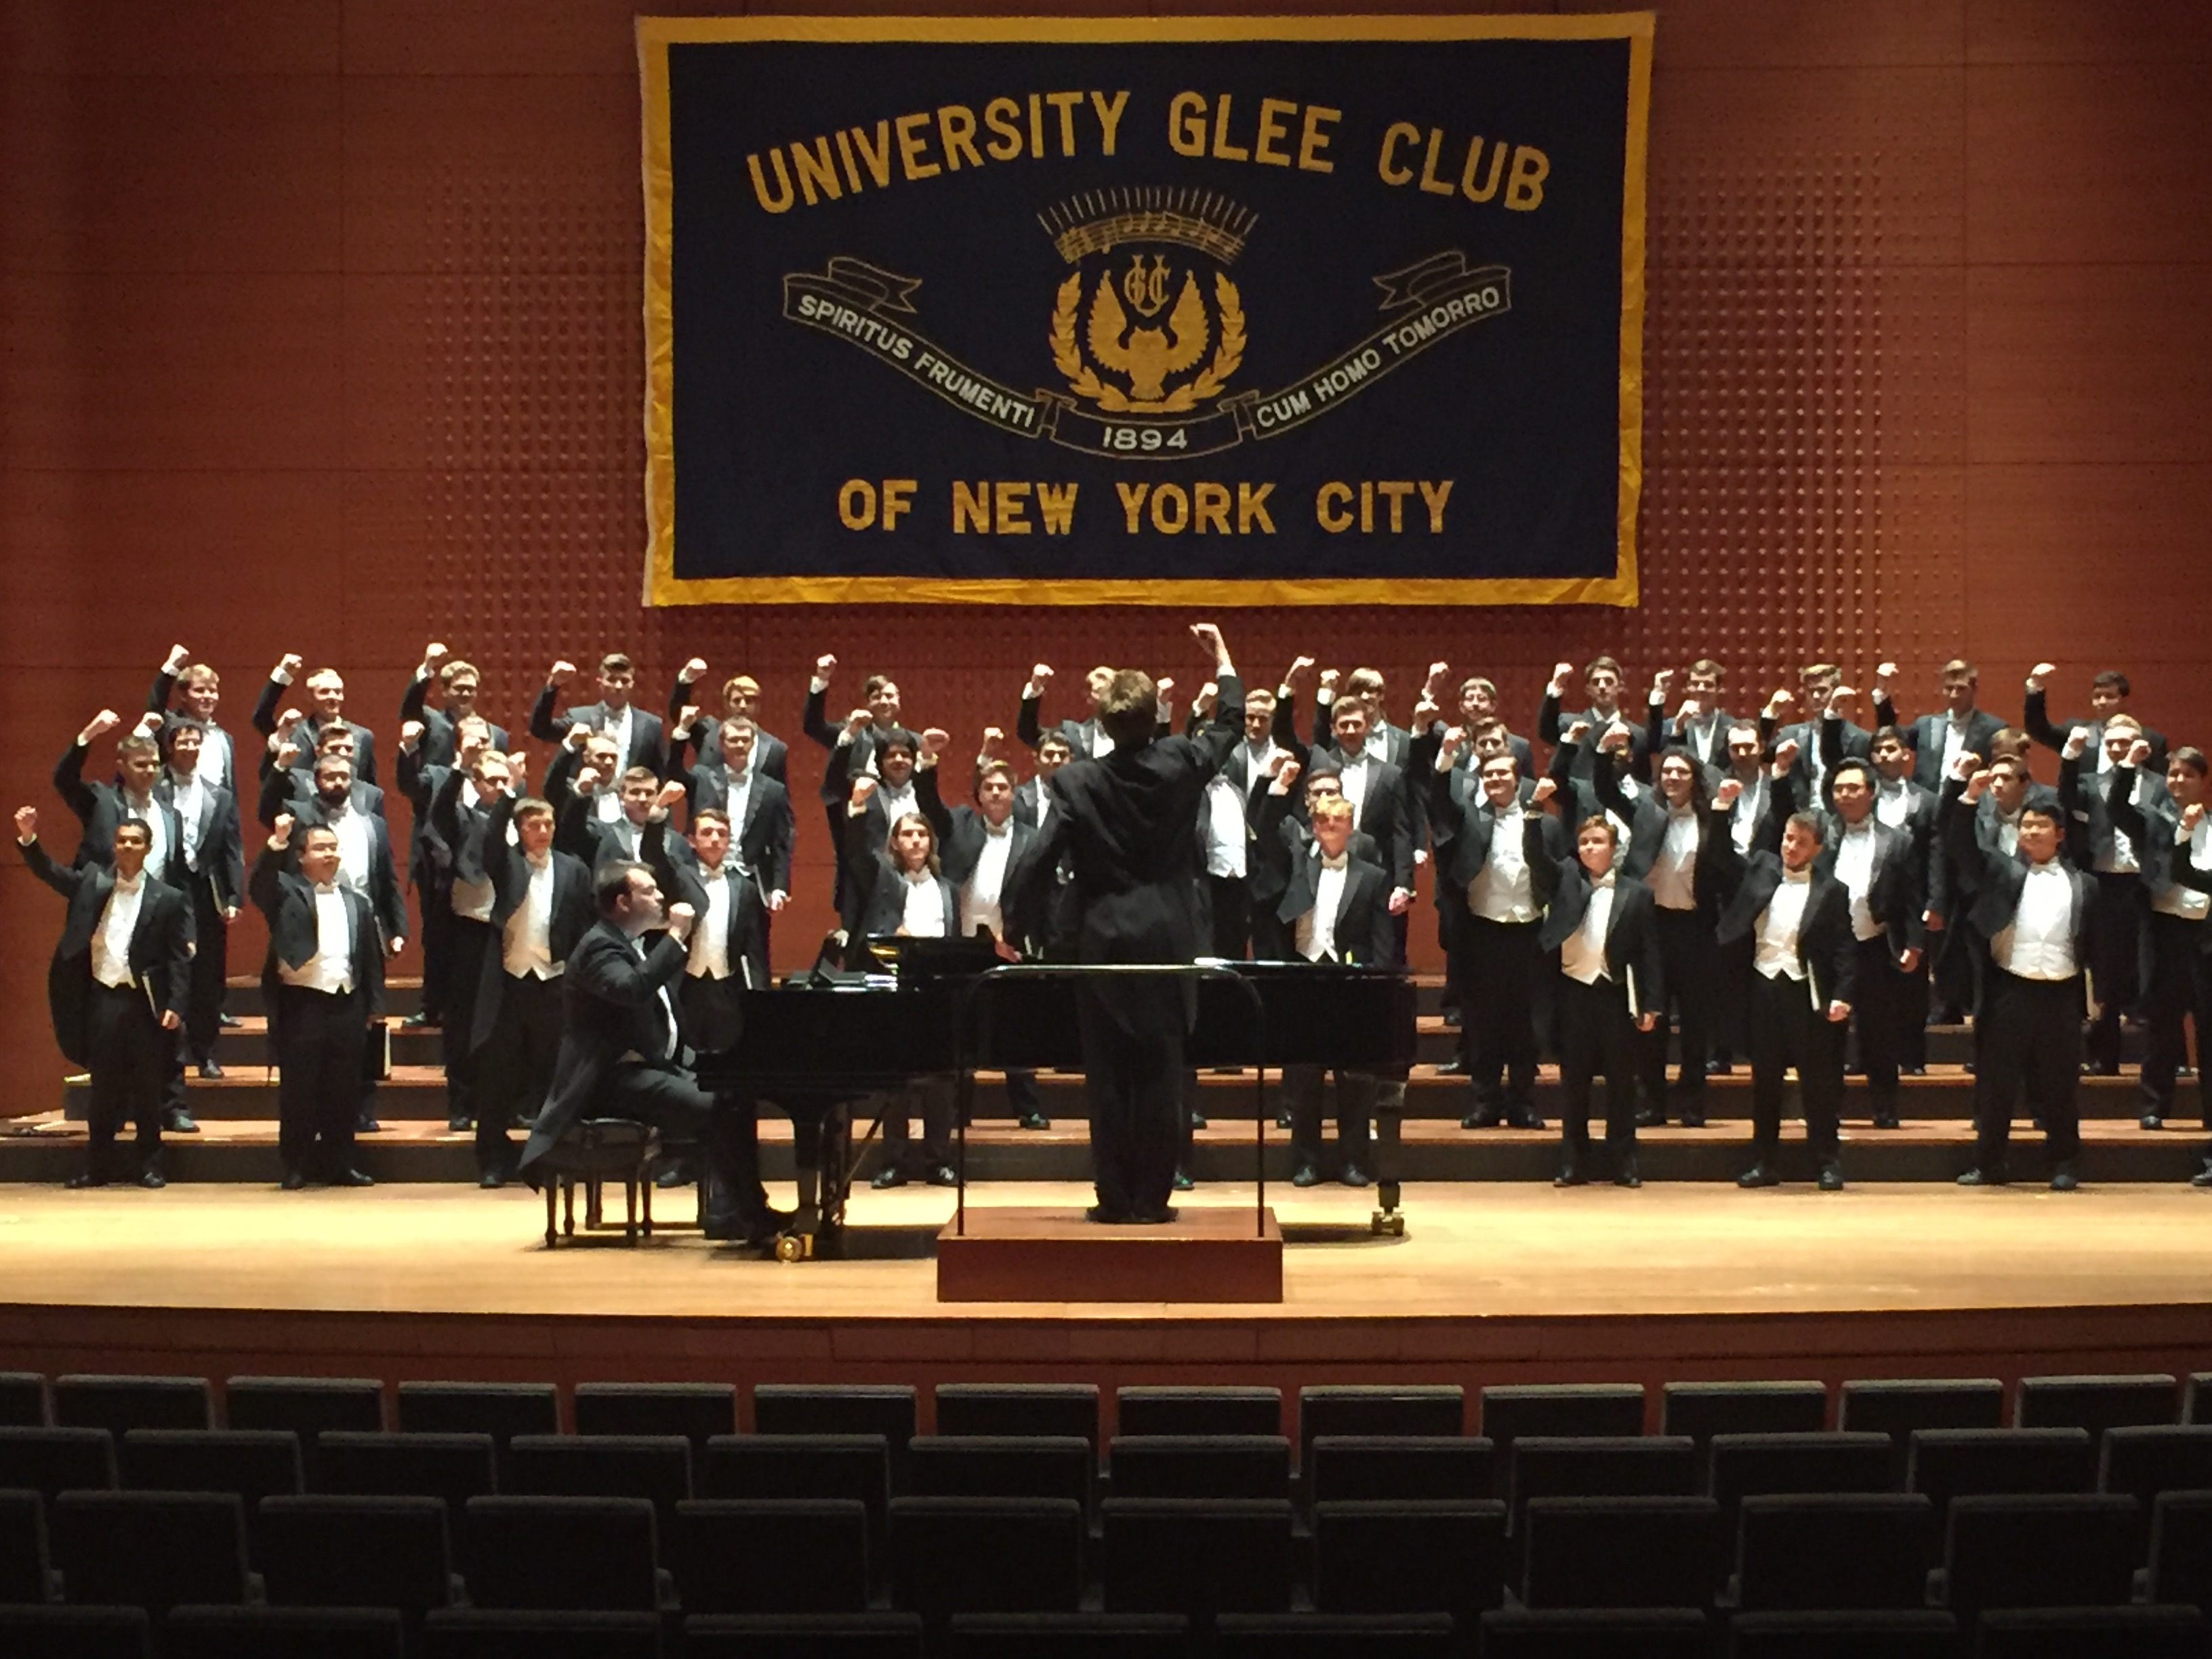 Glee Club performing at Alice Tully Hall, January 2018